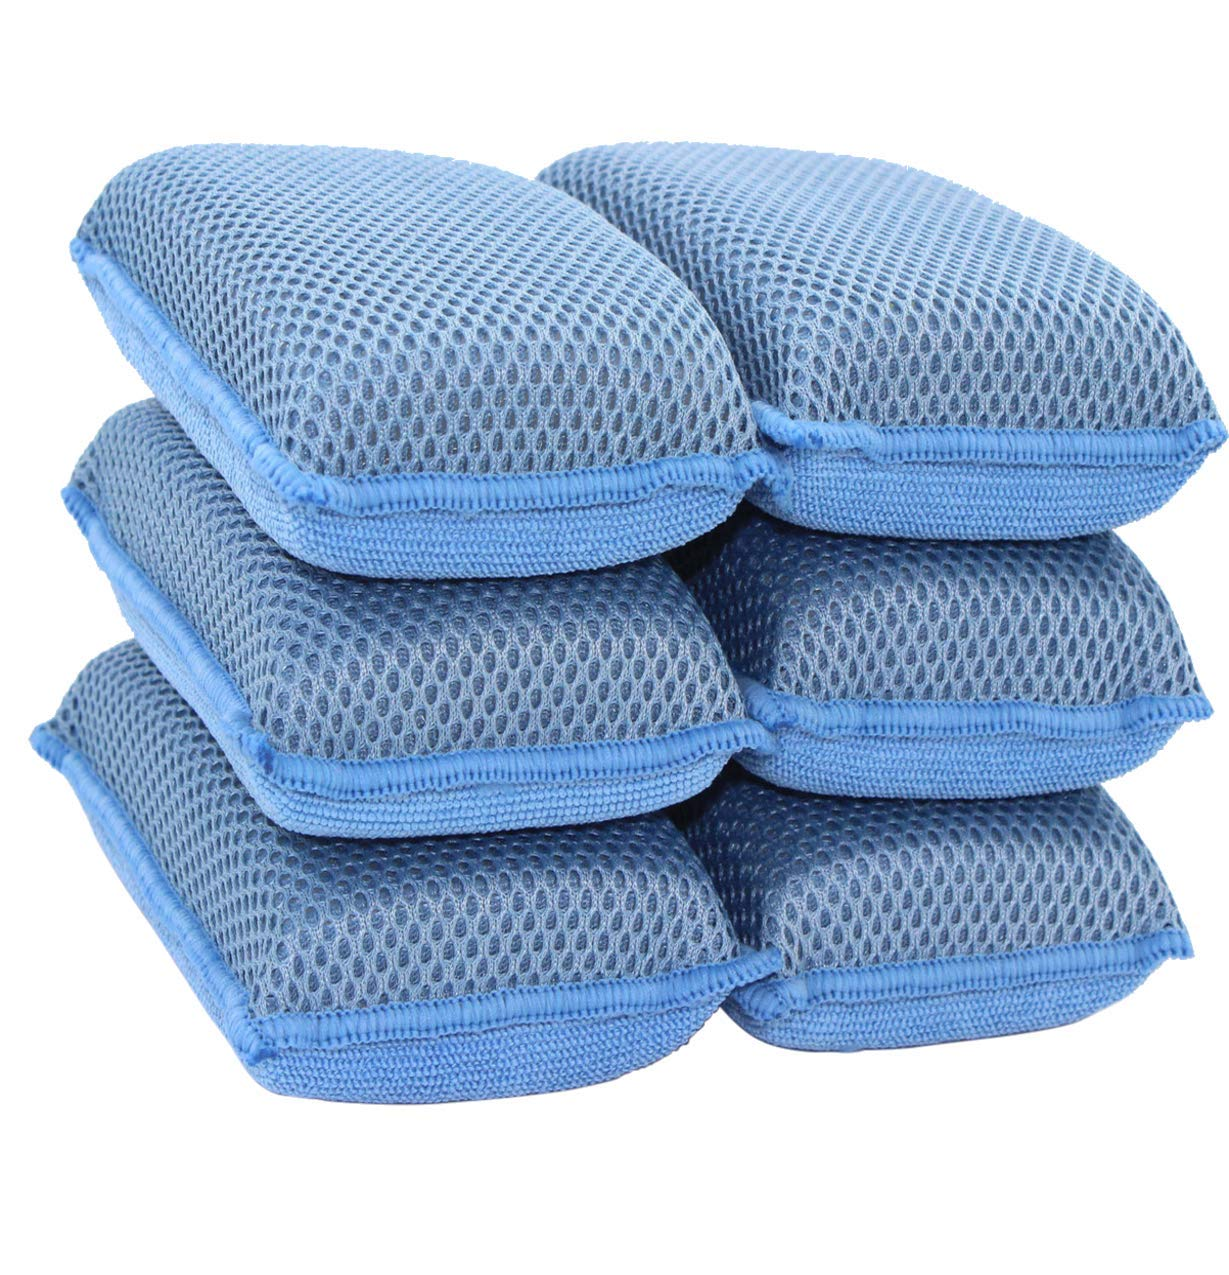 Miracle Microfiber Kitchen Sponge by Scrub-It (6 Pack) - Non-Scratch Heavy Duty Dishwashing Cleaning sponges- Machine Washable- (Blue)